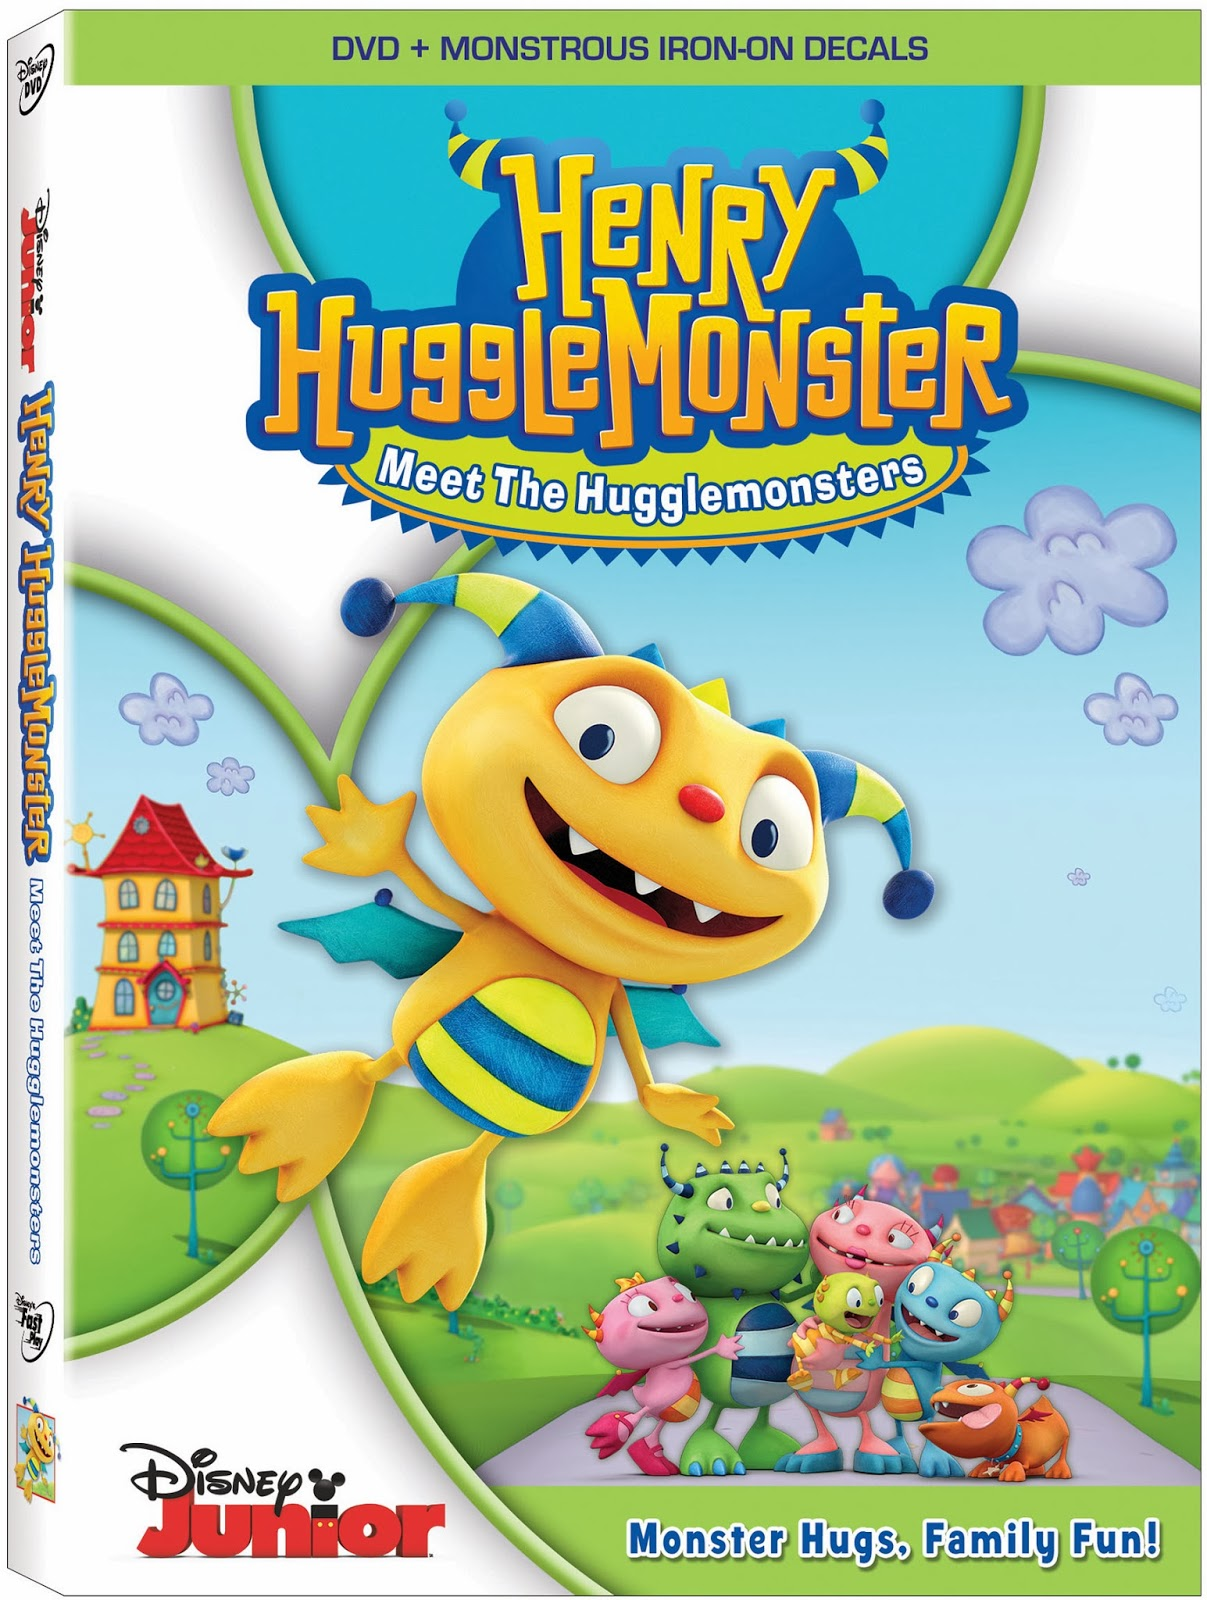 HenryHugglemonster DVD art